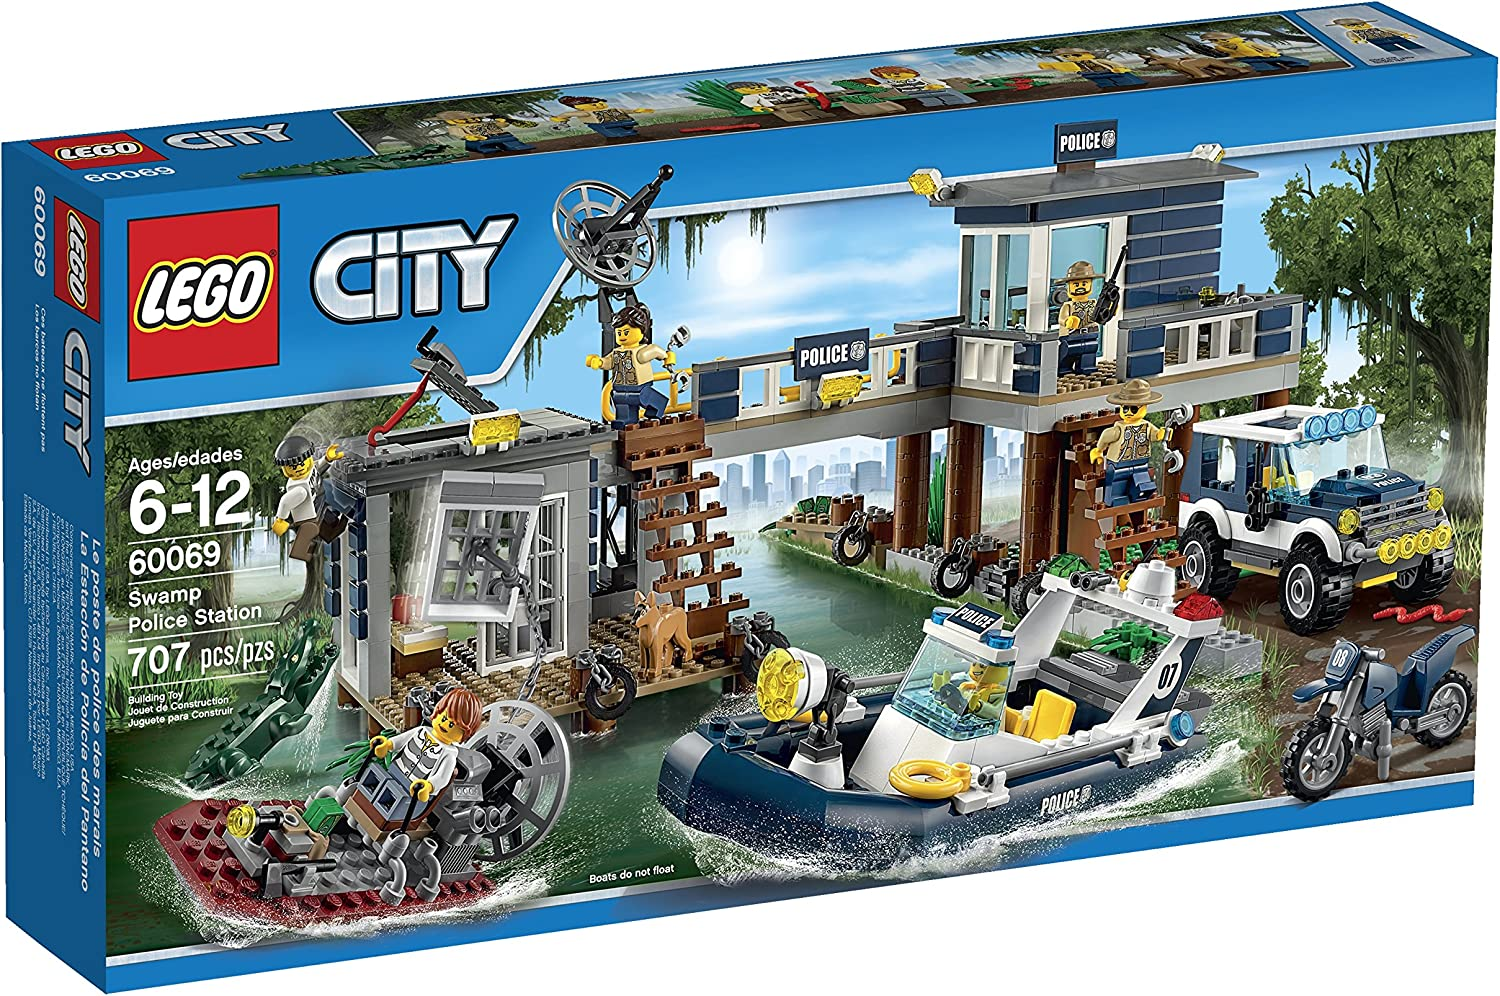 LEGO City Police Swamp Police Station